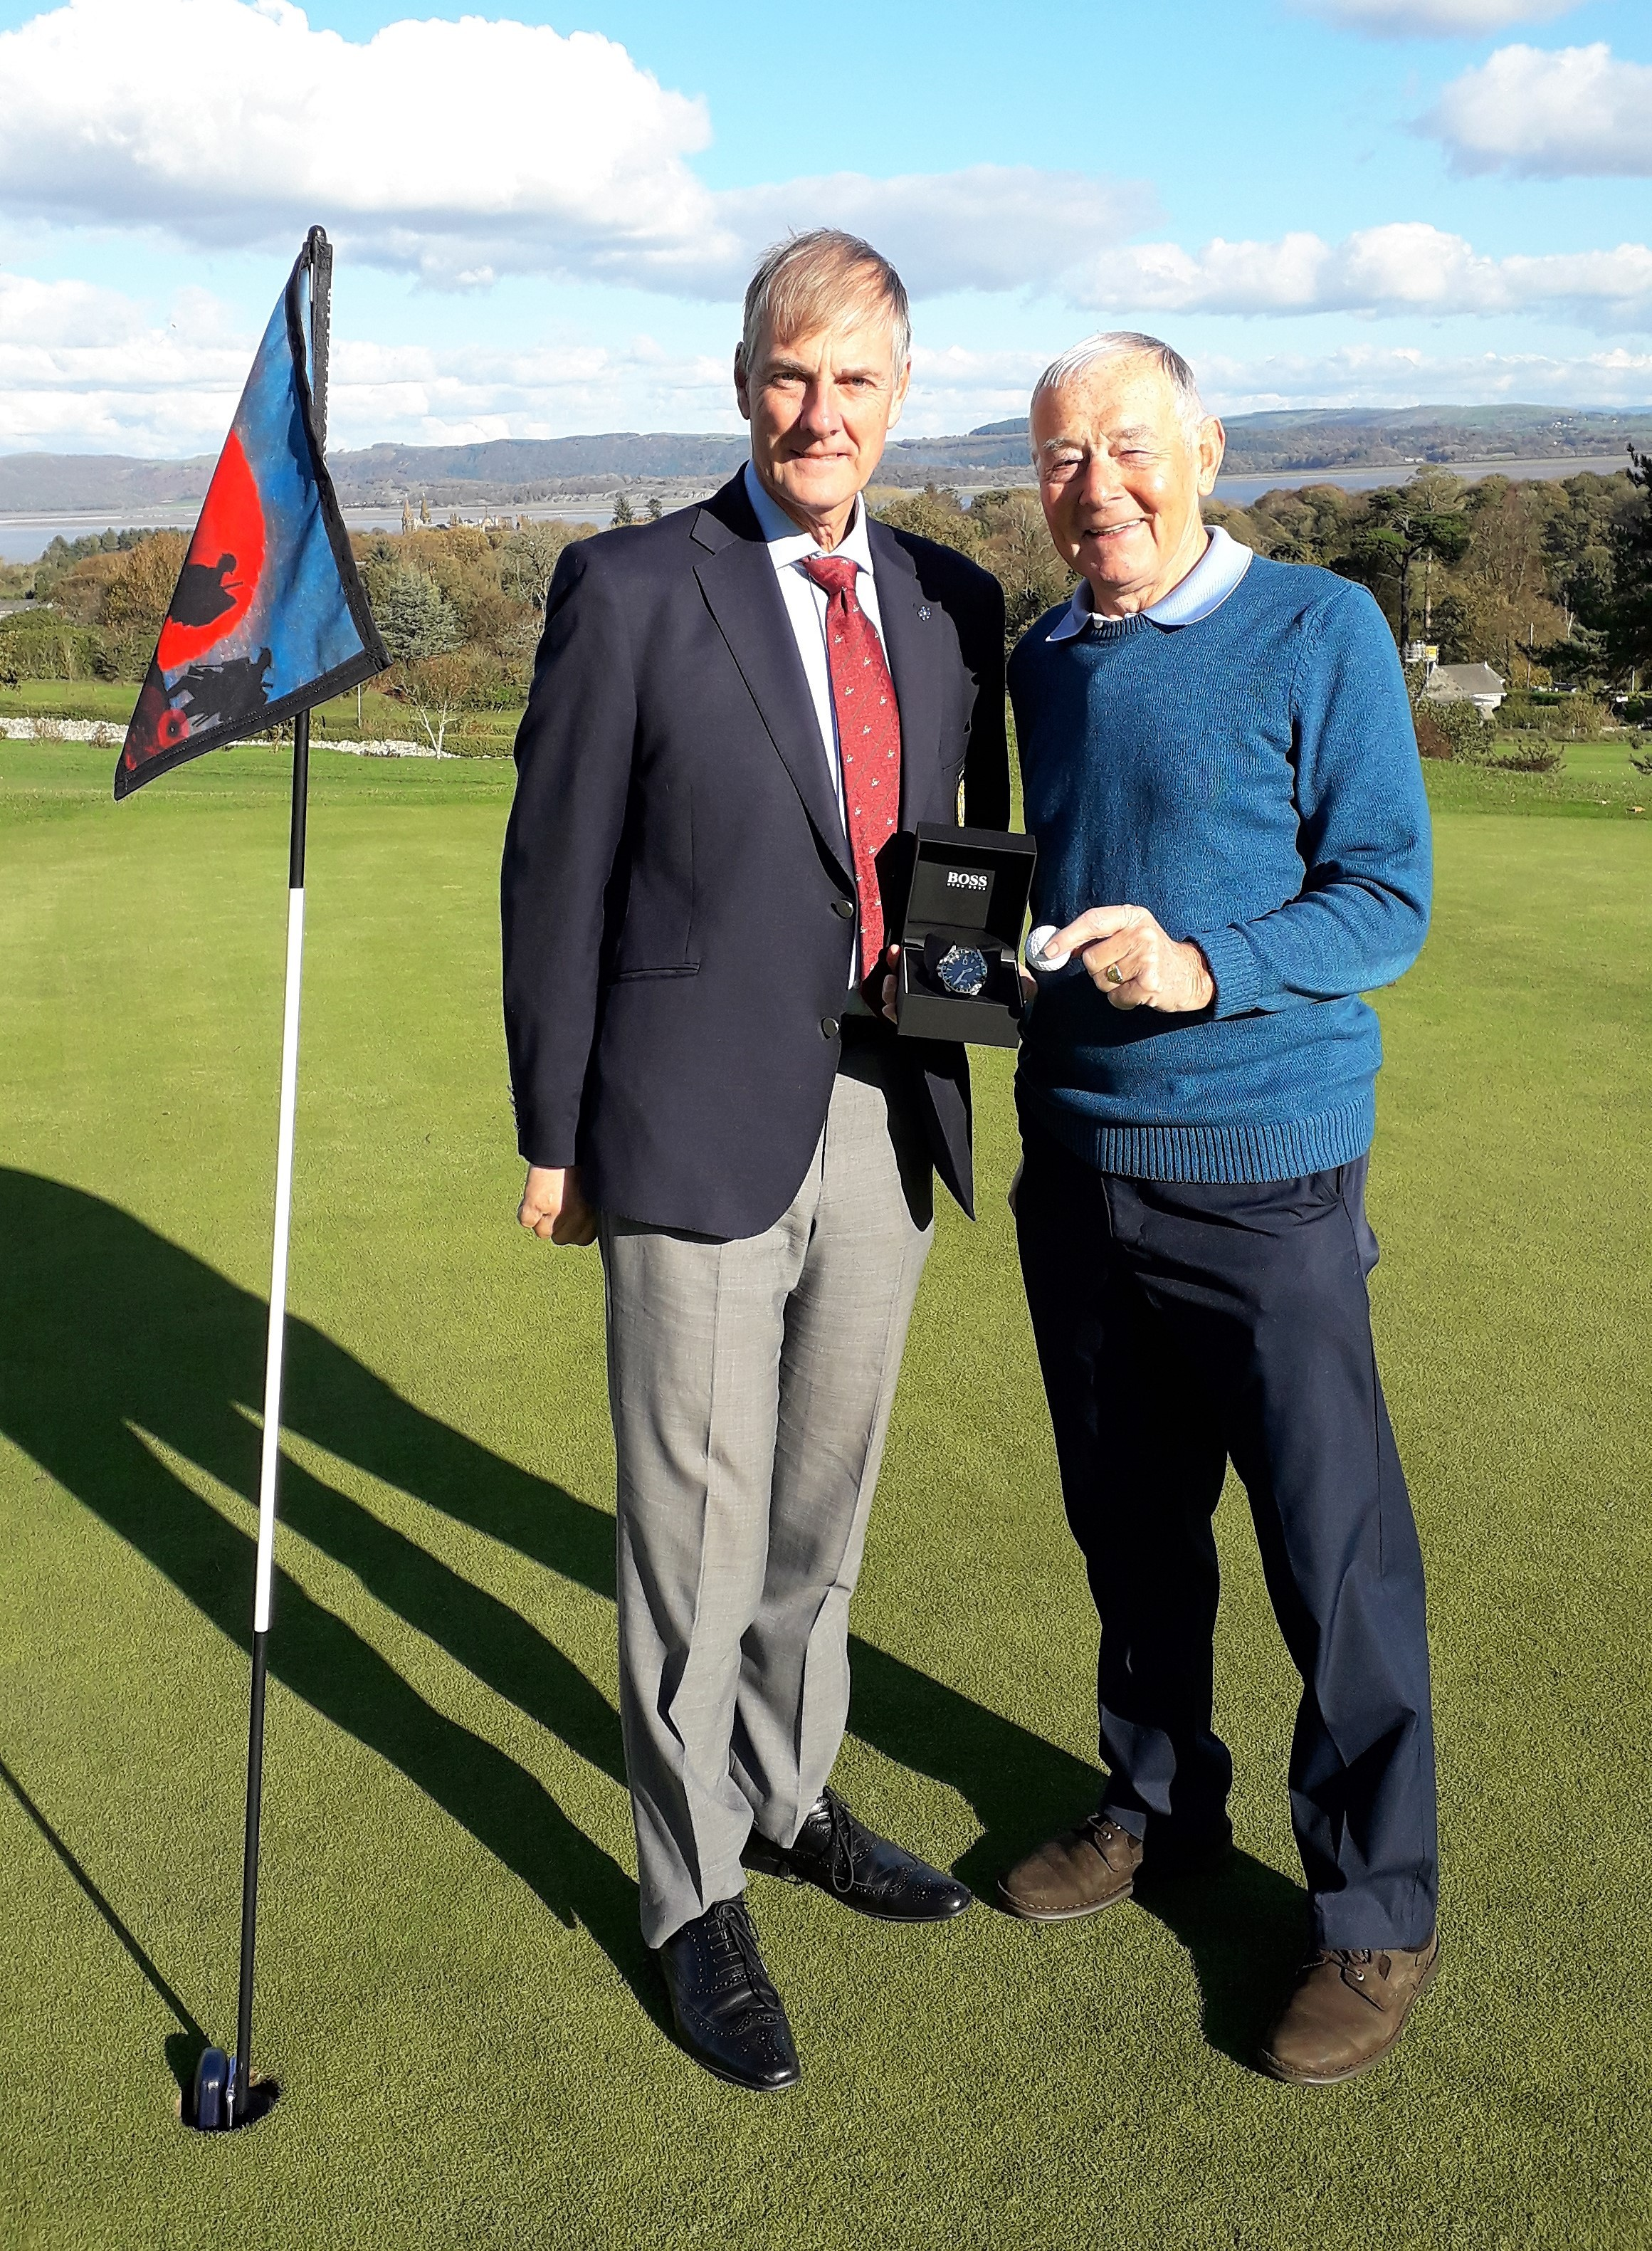 Terry Rhodes (right) and Ulverston Golf Club captain Neil Bremner